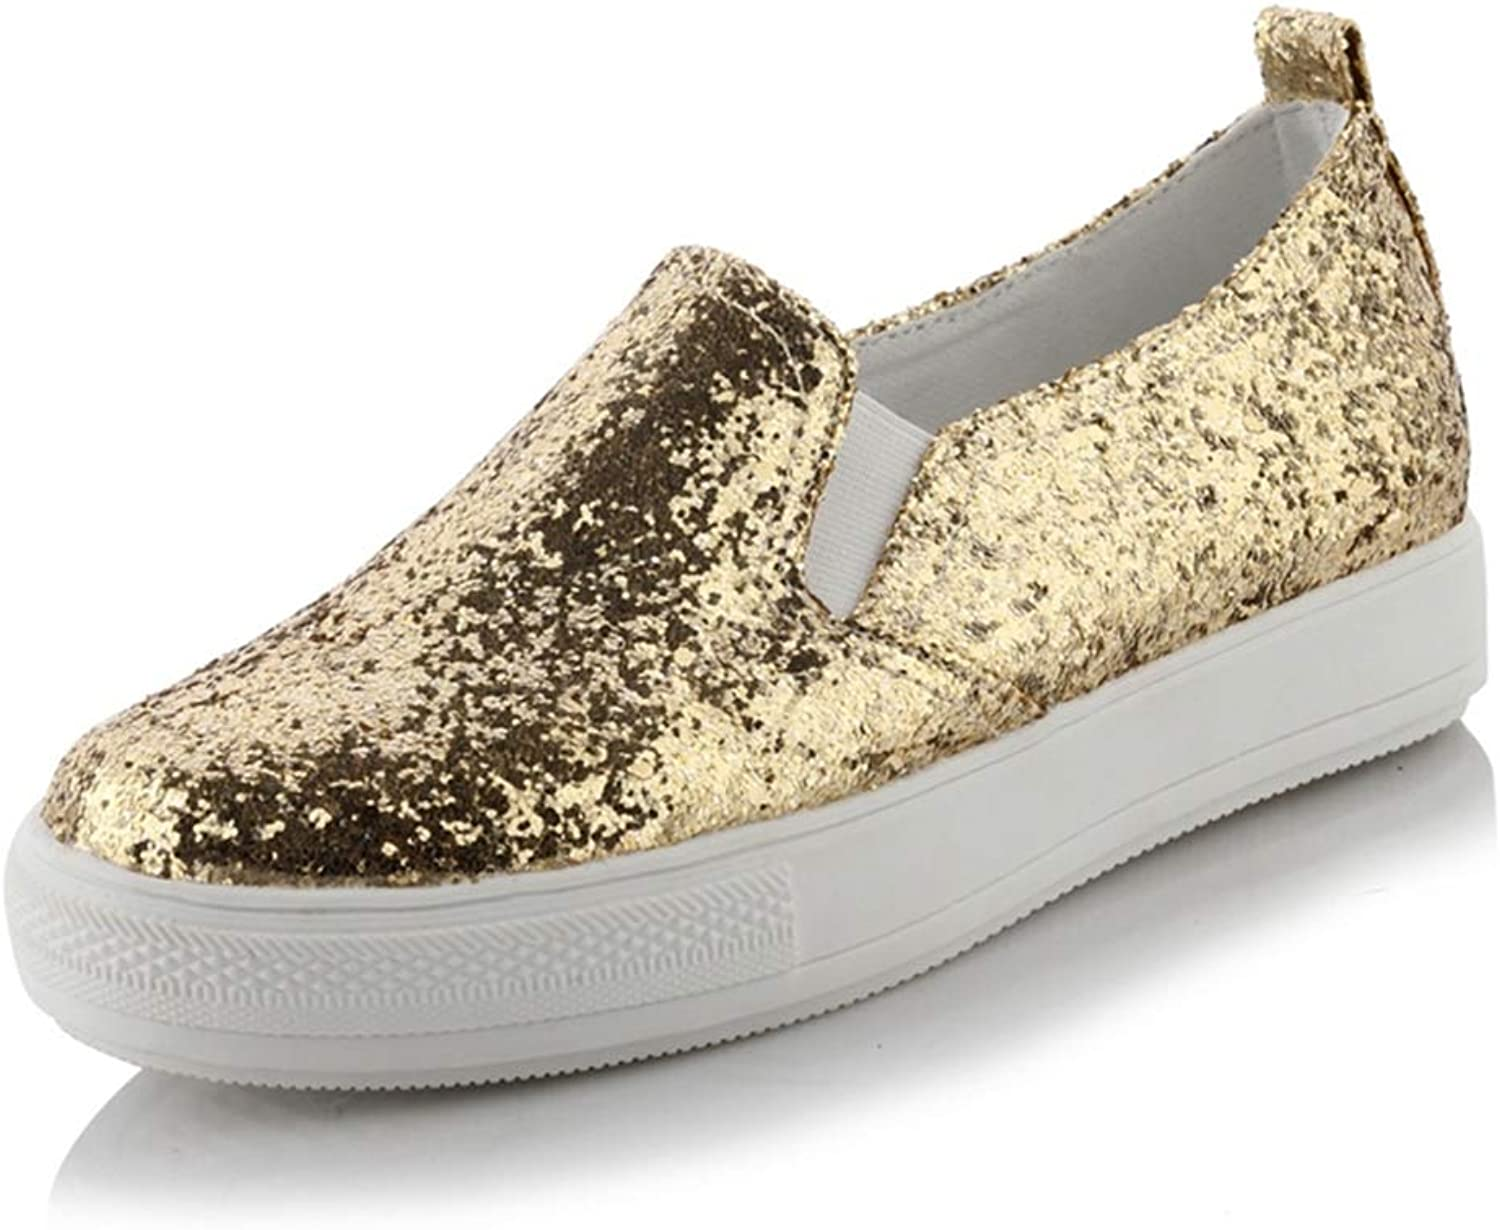 Btrada Women Wedge Heel Sneakers Sequin Bling Glitter Female Platform Casual shoes Slip on Fashion shoes